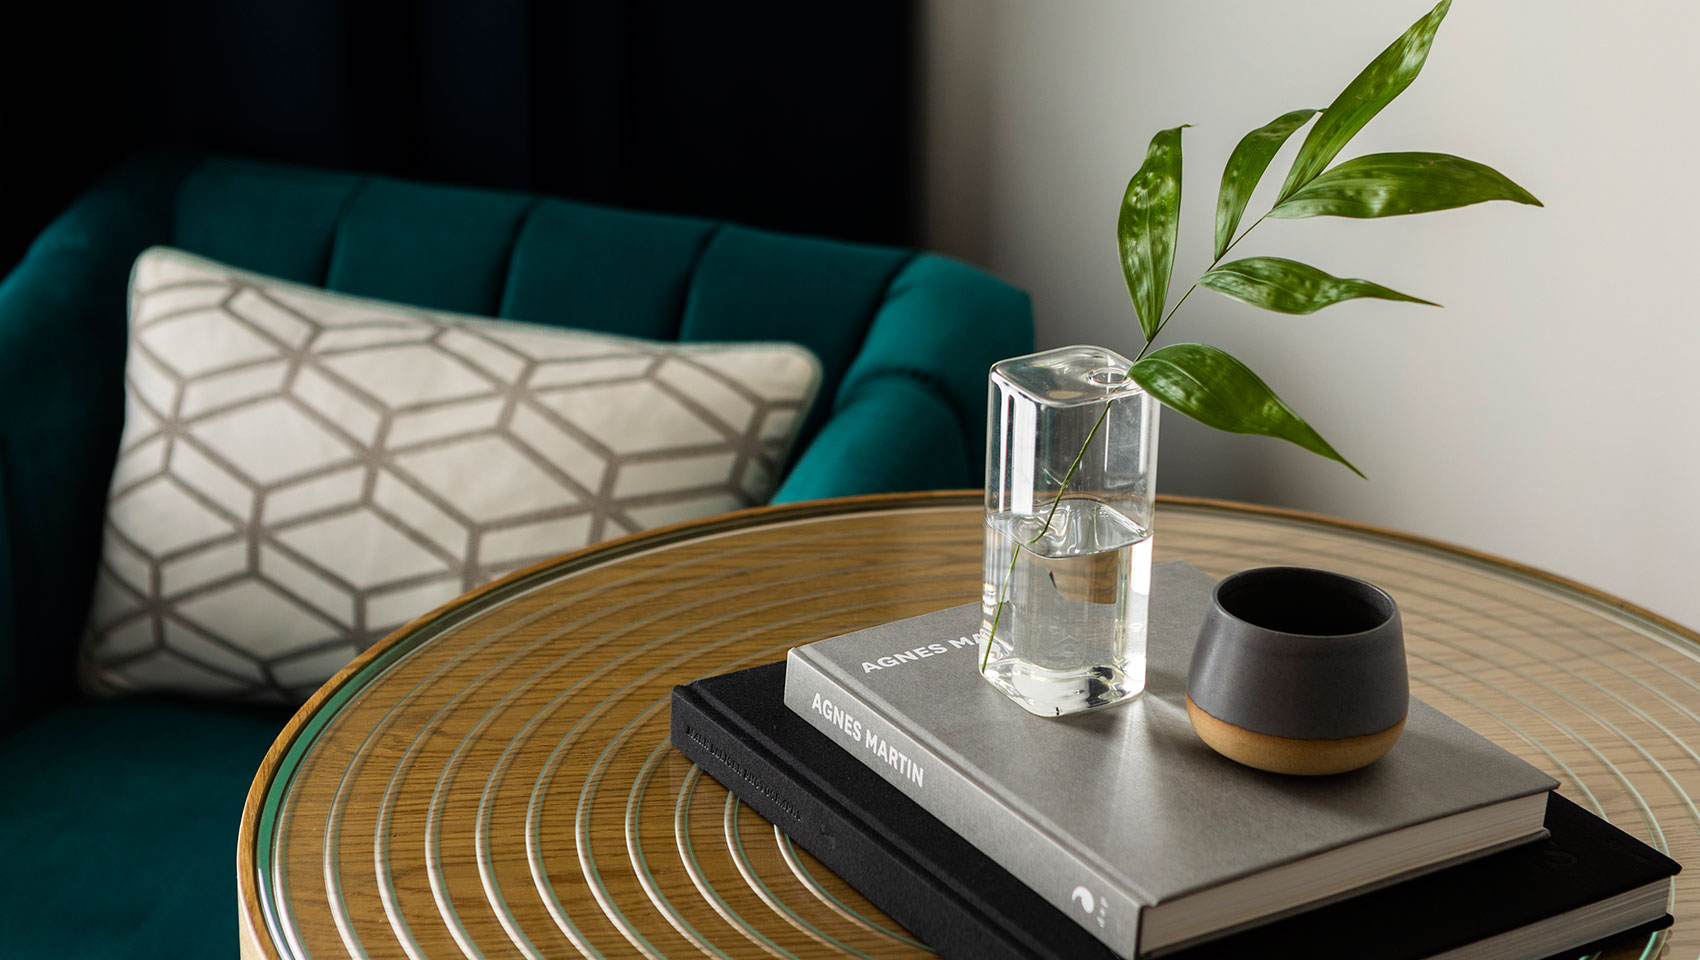 pittman side table with greenery